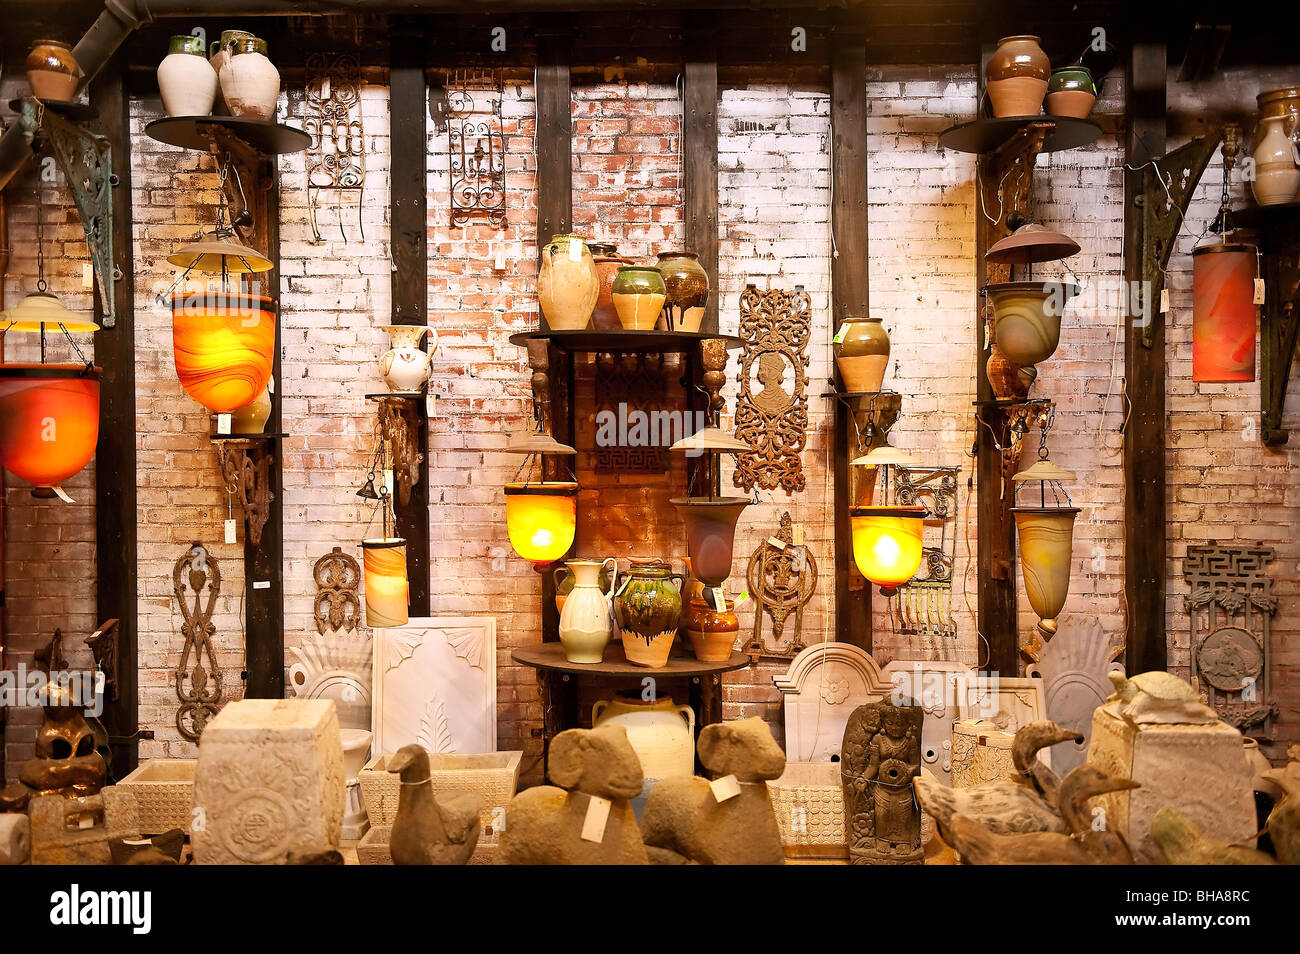 Imported asian lamps. - Stock Image